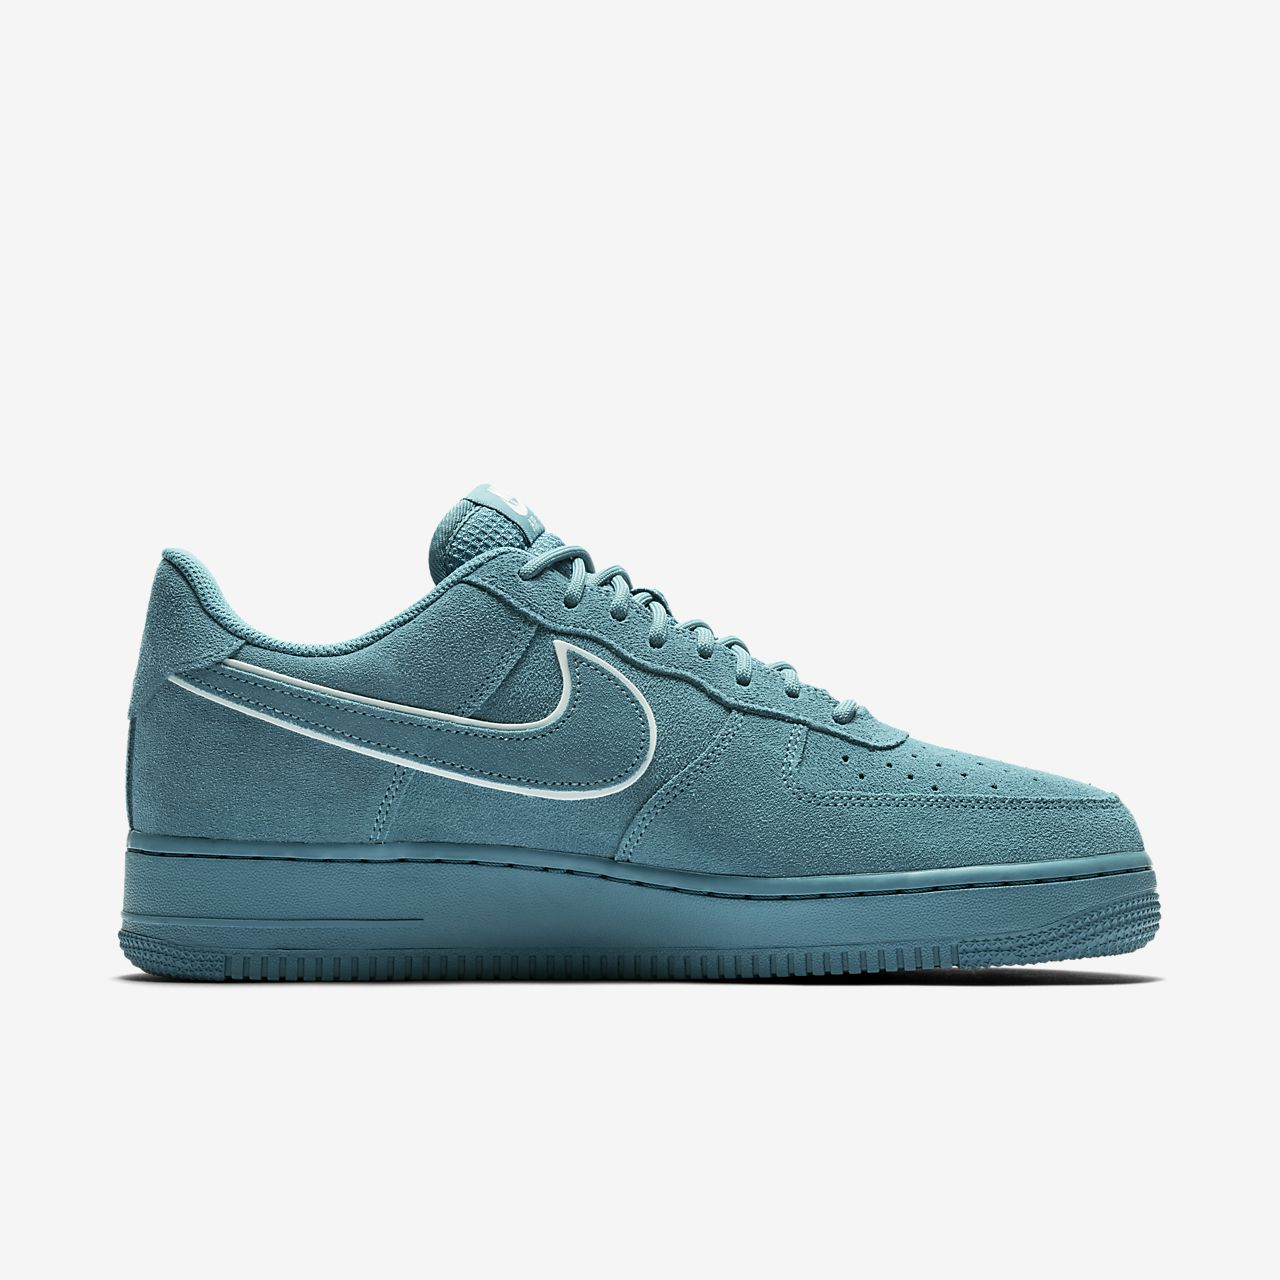 nike men's air force 1 '07 lv8 basketball shoe nz